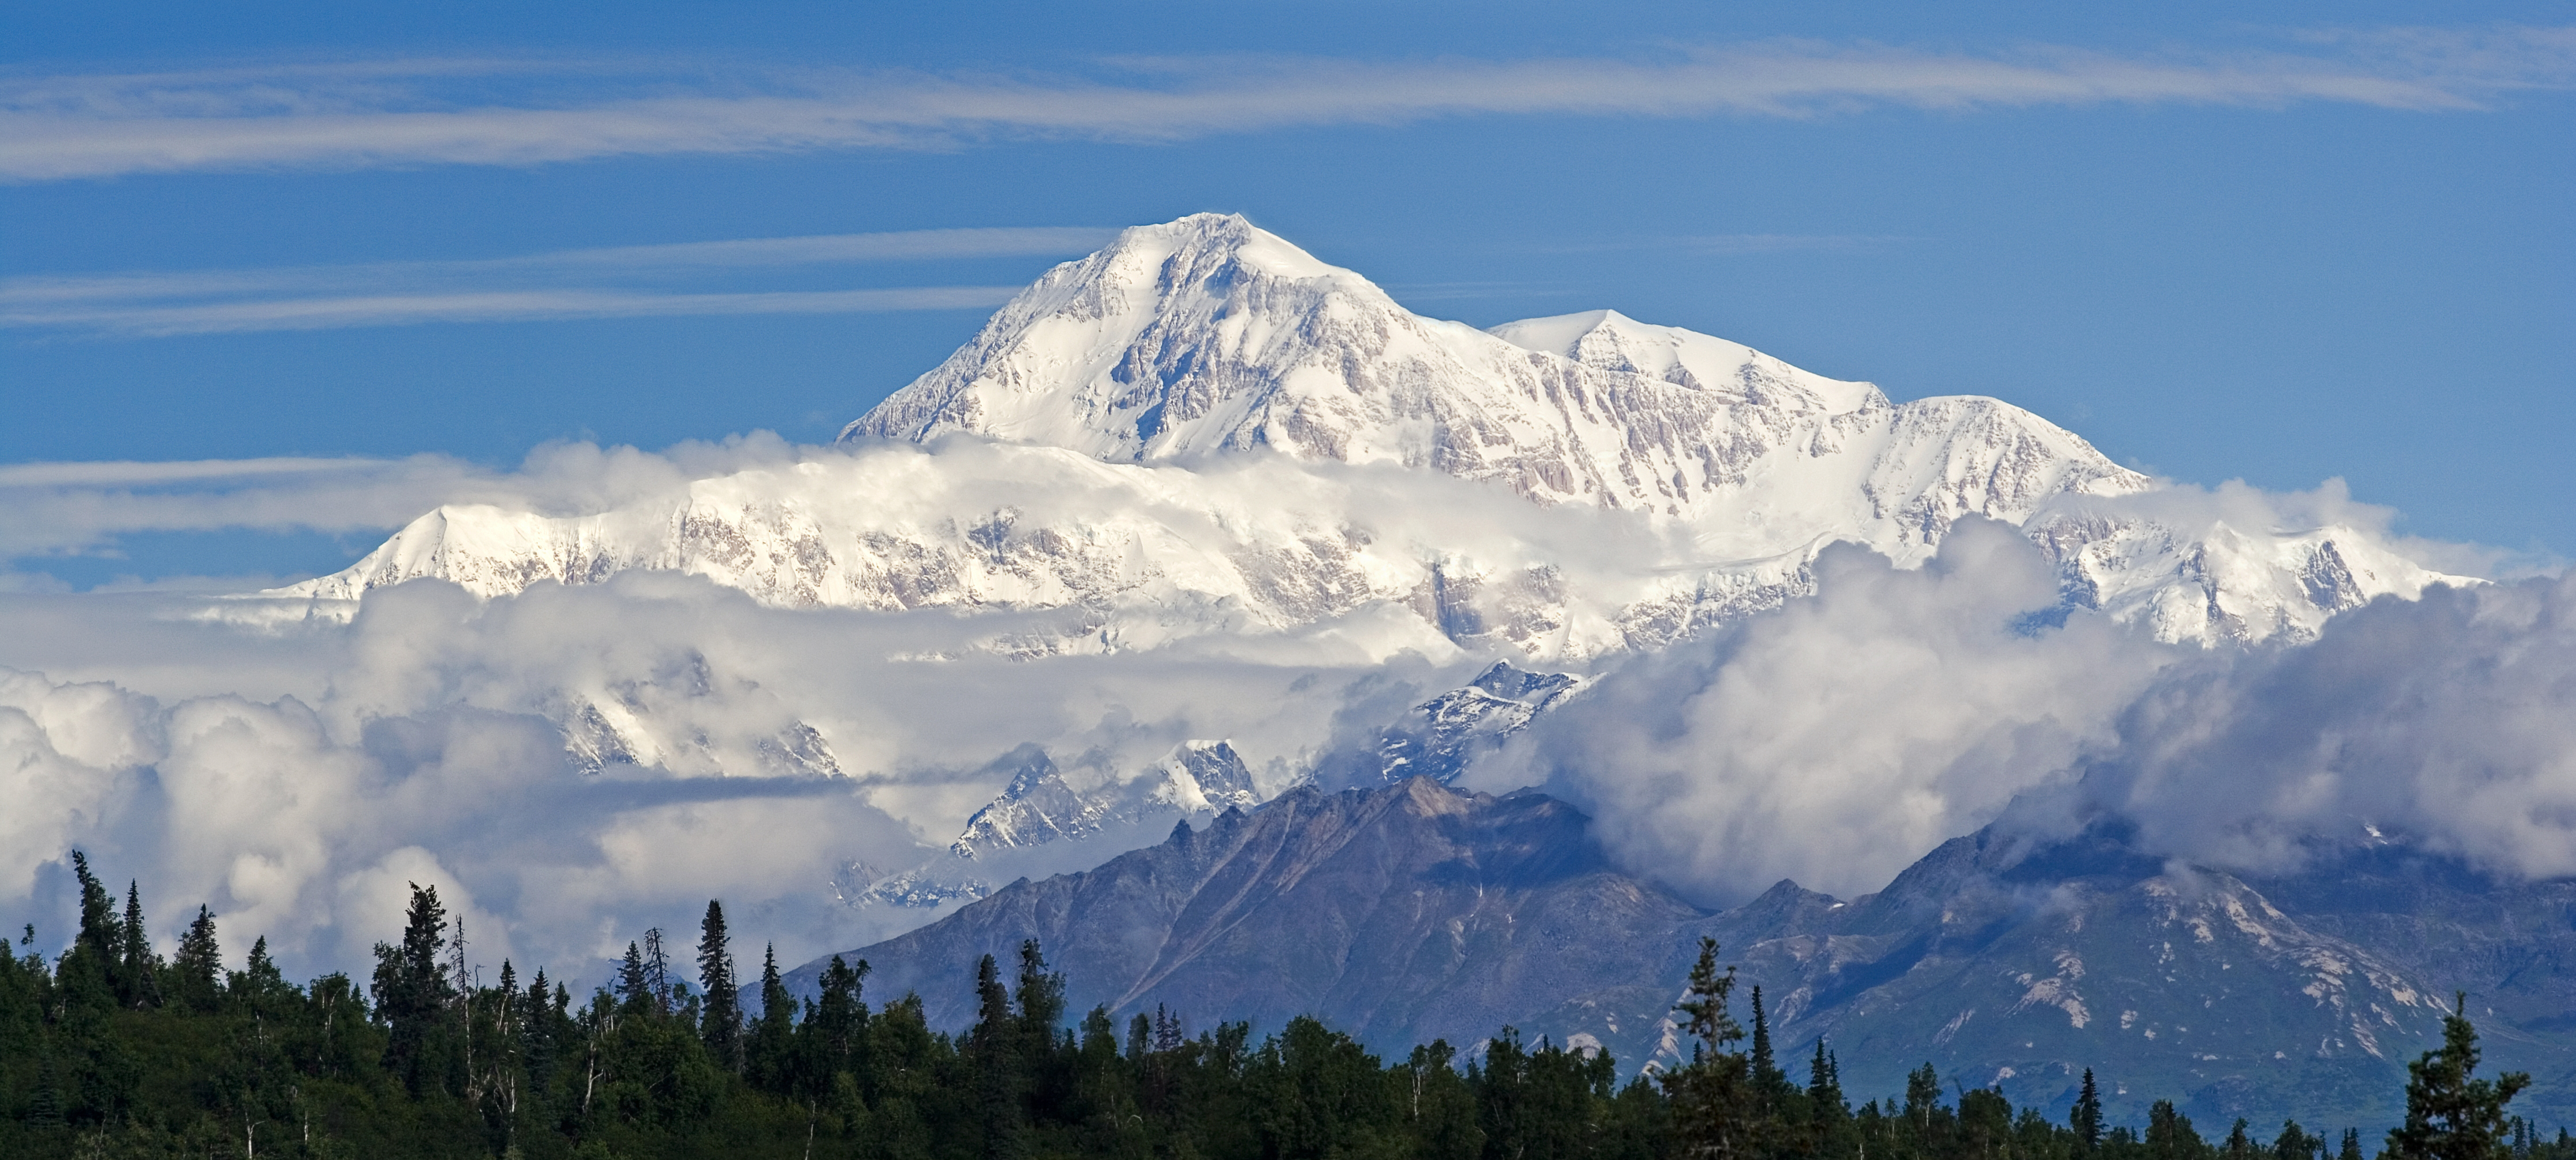 denali national park online hookup & dating Your guide to adventure in an effort to preserve the fragile ecosystem of denali national park and preserve, the national park service has limited access on park road for private vehicles.